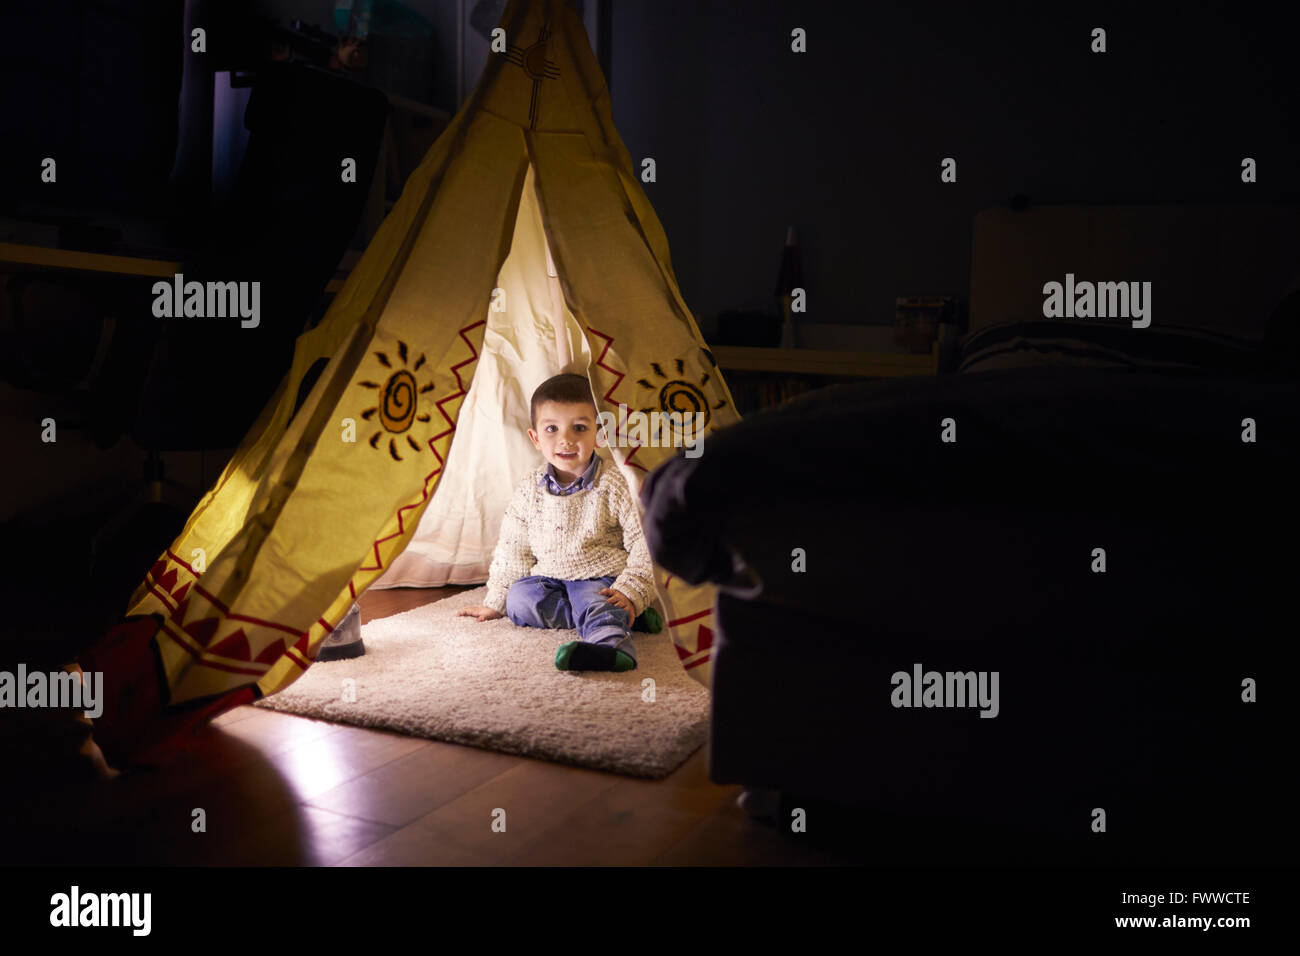 Young Boy Playing Inside Tent Set Up Indoors Stock Photo